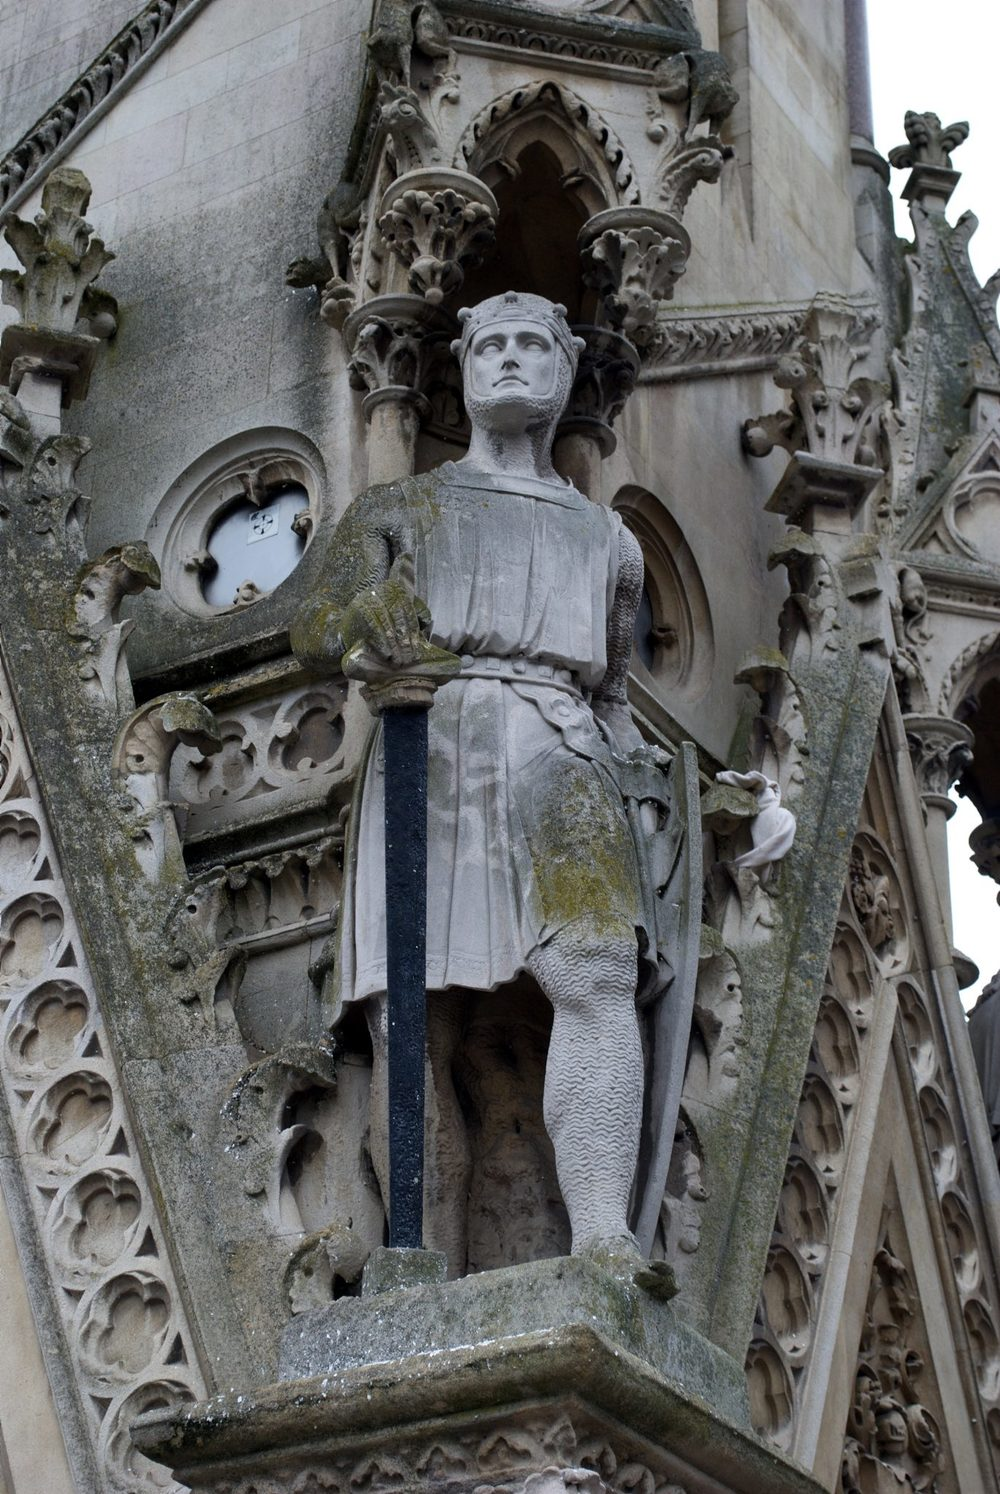 Statue of Simon de Montfort on the Haymarket Memorial Clock Tower in Leicester, England. Photograph by NotFromUtrecht. [CC 3.0]